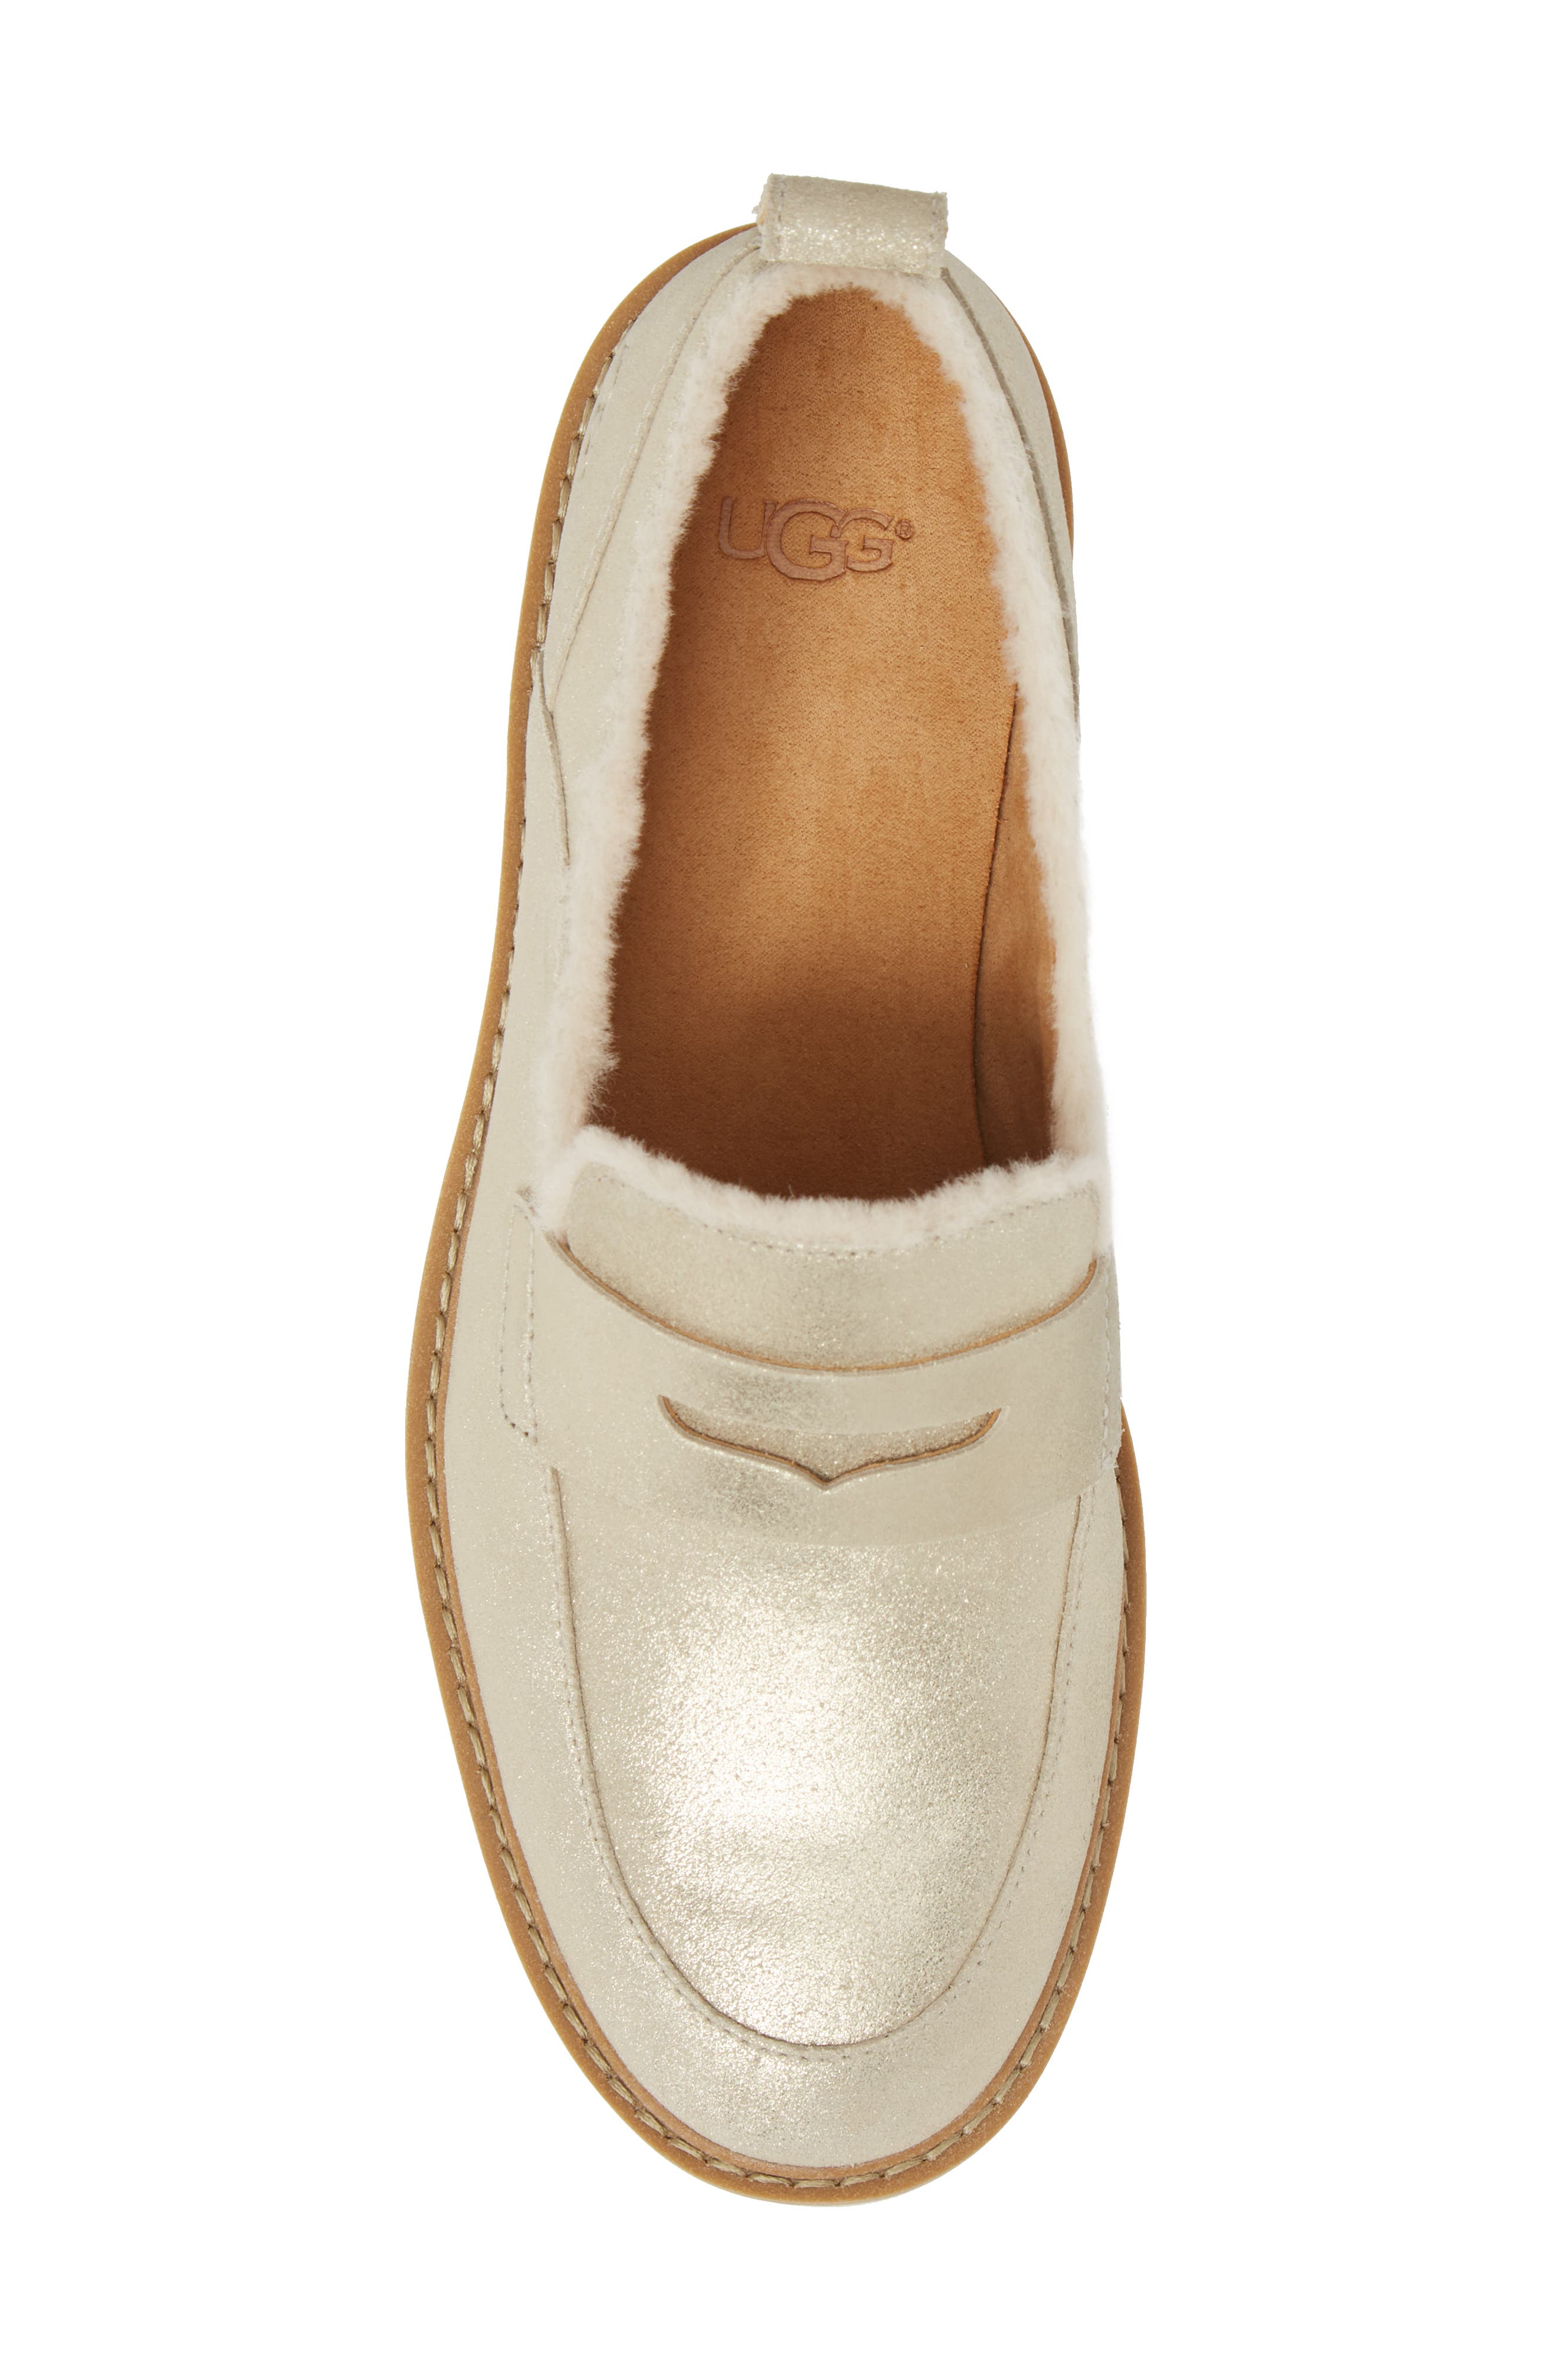 Atwater Metallic Wedge Loafer,                             Alternate thumbnail 5, color,                             710